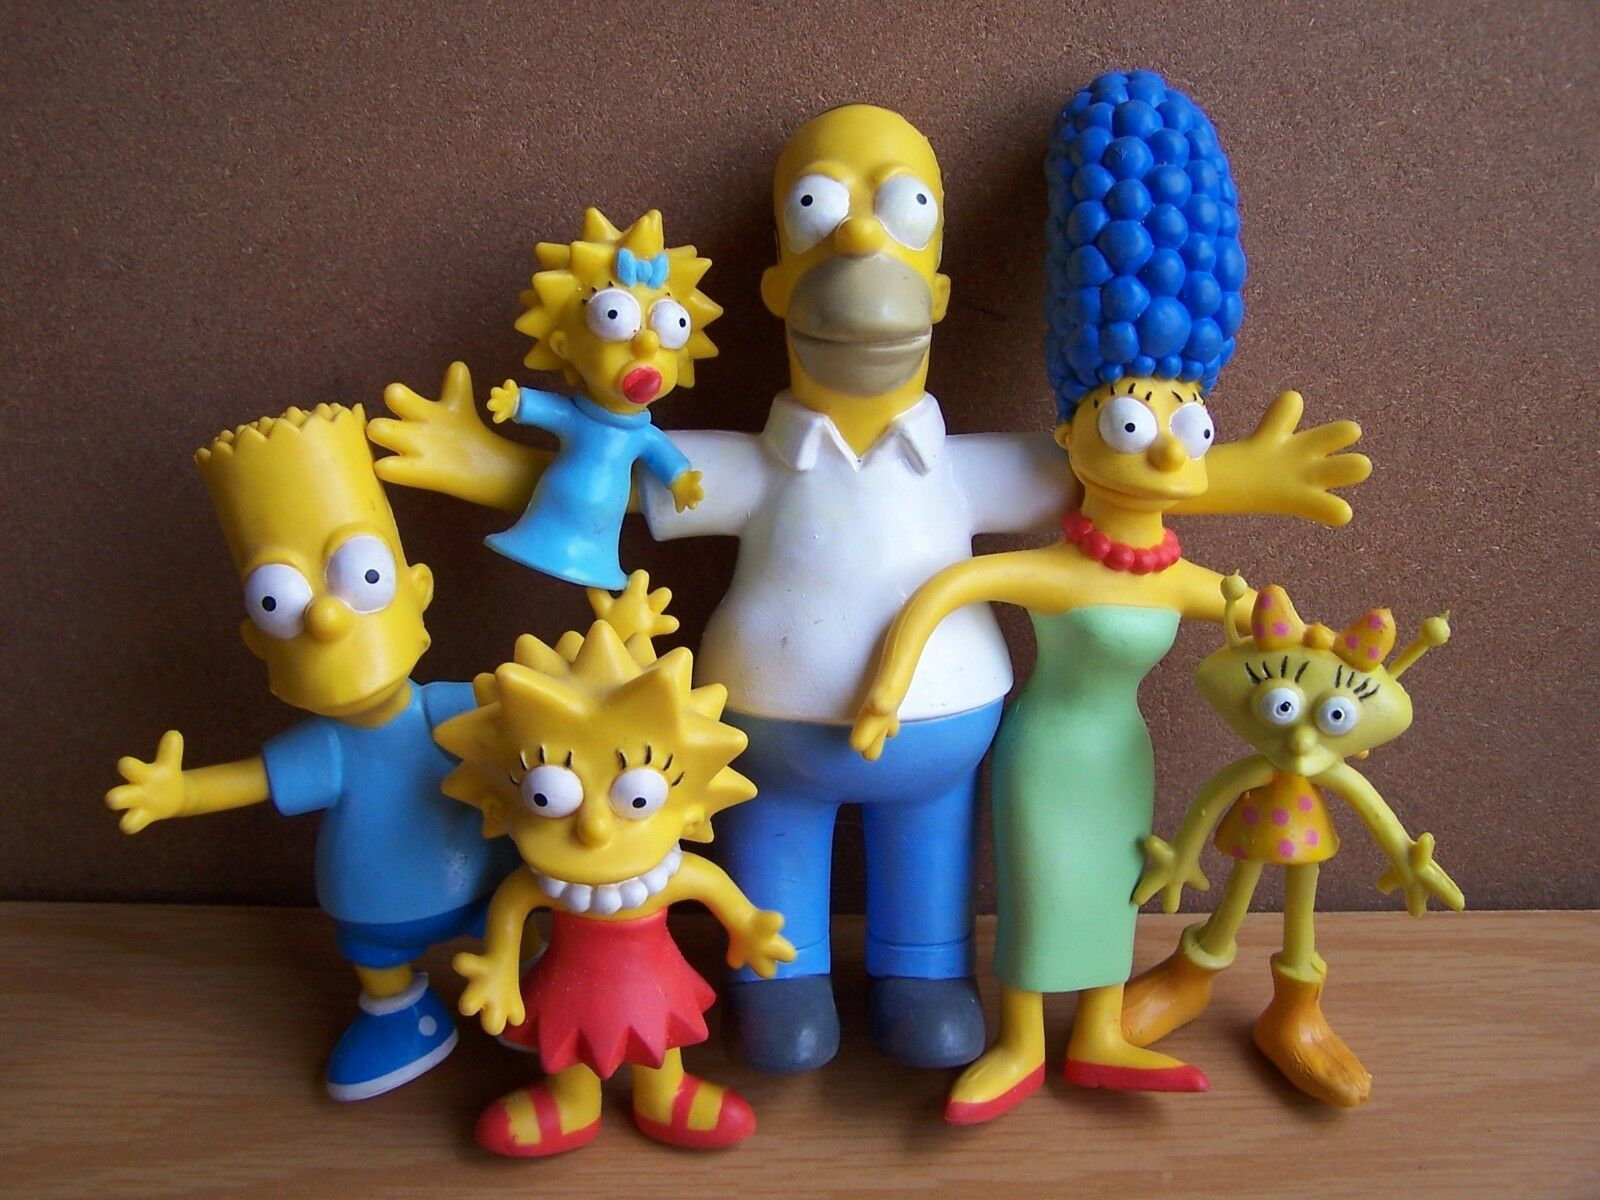 THE SIMPSONS ONE OF A KIND SET of 6 ALIEN SISTER SOOZI SUPER RARE